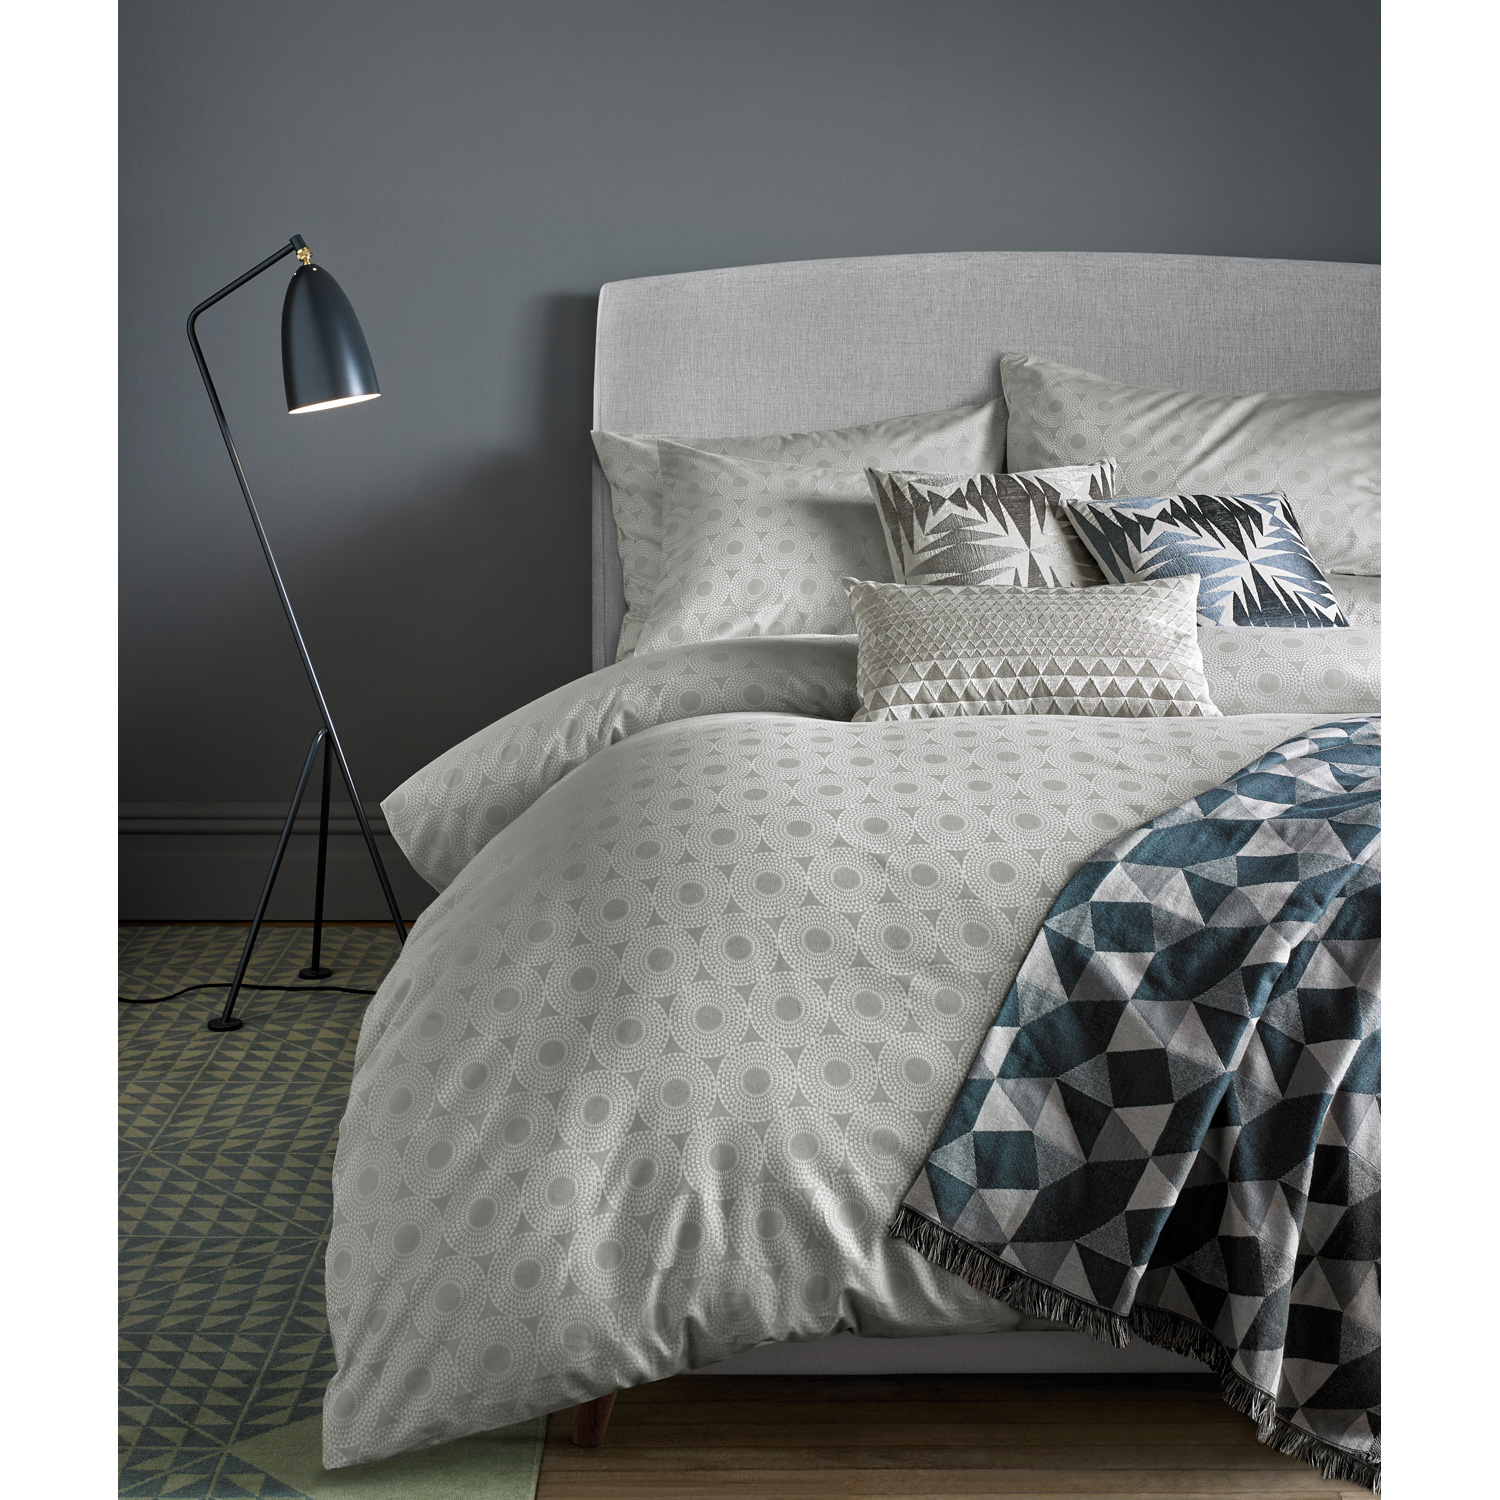 Bed linen concentric bed linen image ... GDBANDF